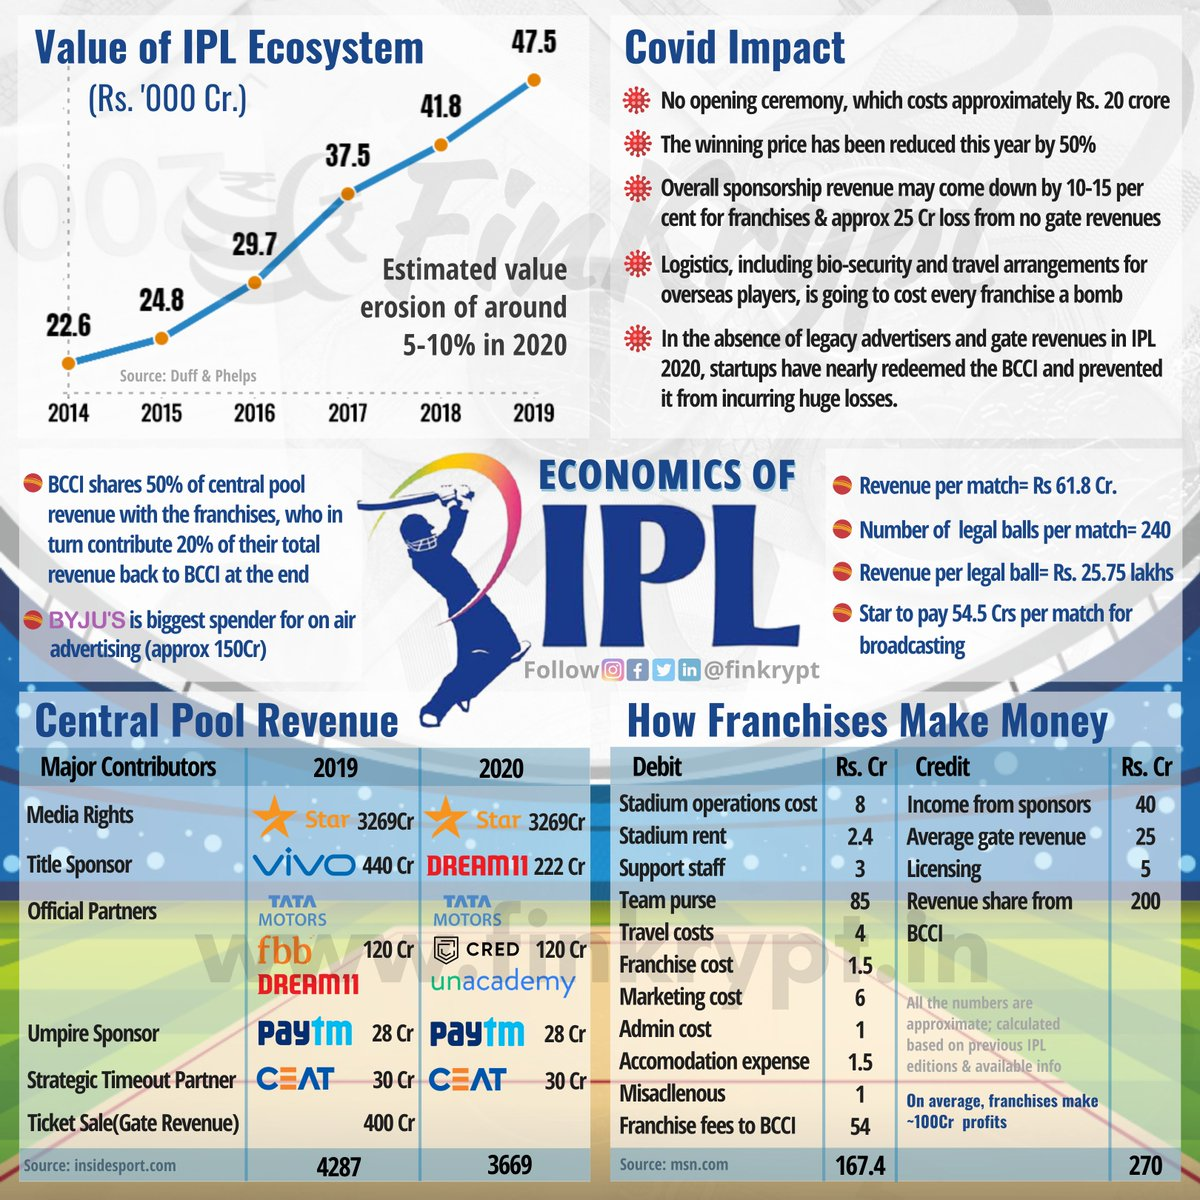 After being pushed towards #uncertainty due to the pandemic, #IPL2020 mania is back!   In today's infographic, we dive into the #economics of #IPL - one of the #richest & grandest #cricket league in the world. #Dream11IPL Read more-https://t.co/NvrAkuSdxY https://t.co/aV0wPUIuSF